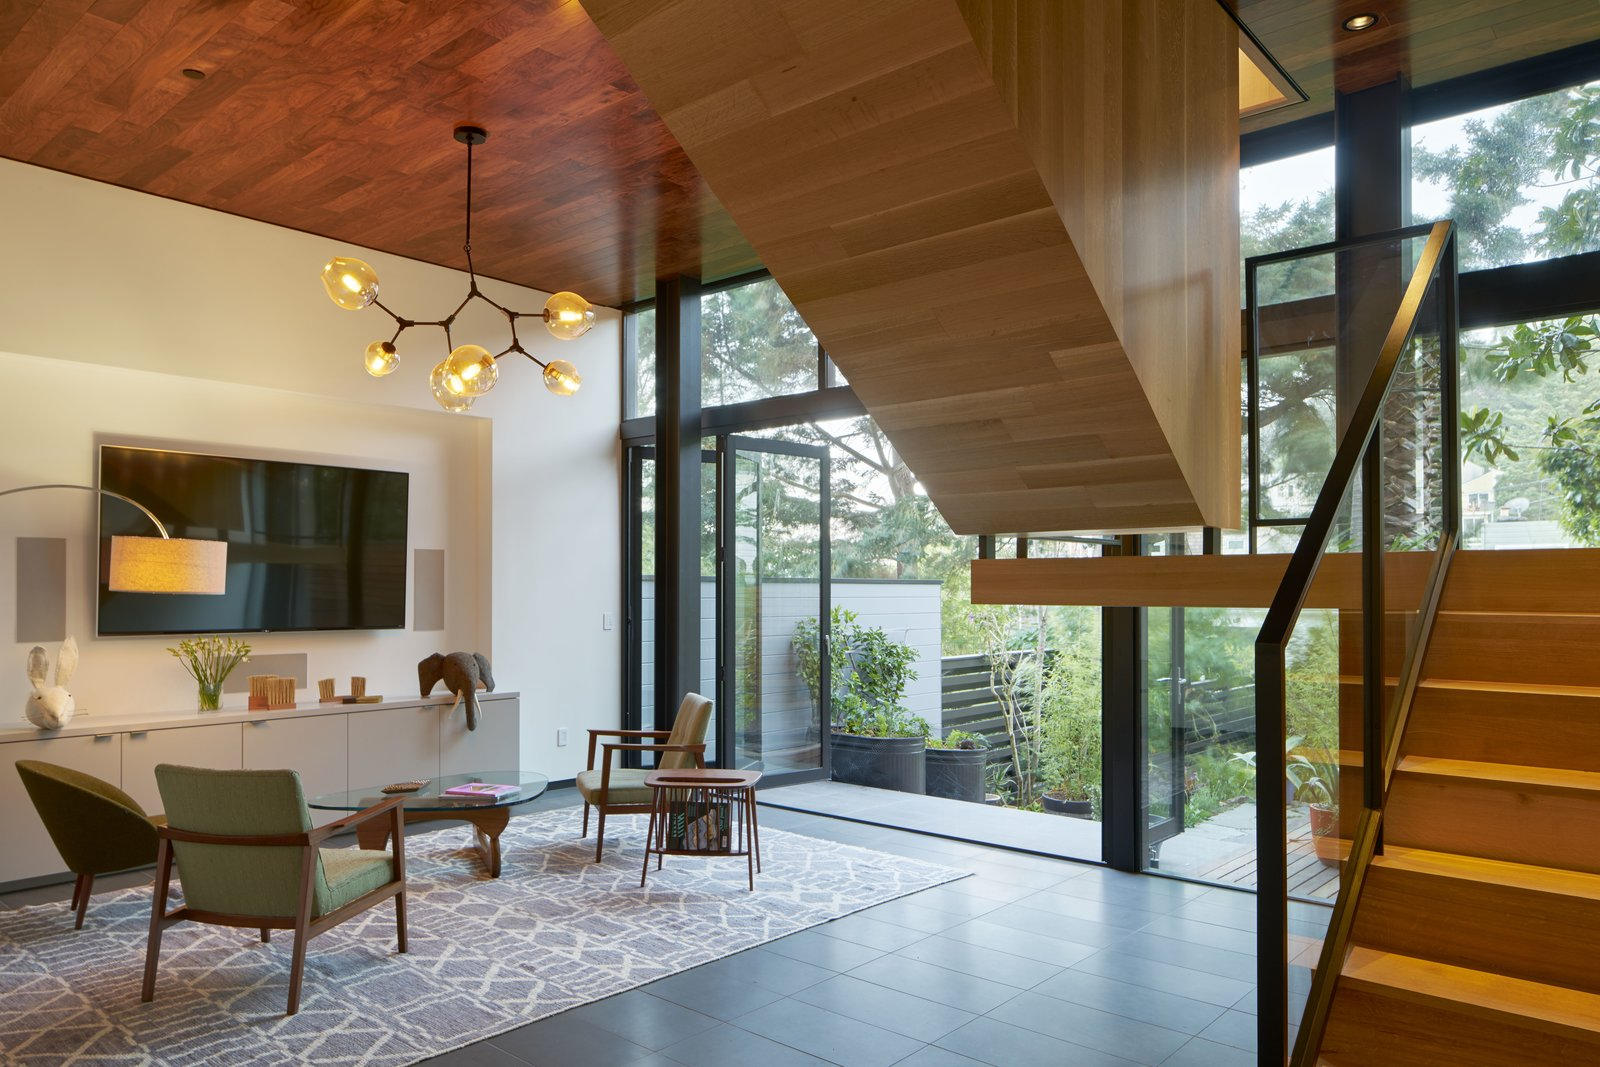 Living Room, Chair, End Tables, Pendant Lighting, and Floor Lighting  29th Street Residence by Schwartz and Architecture